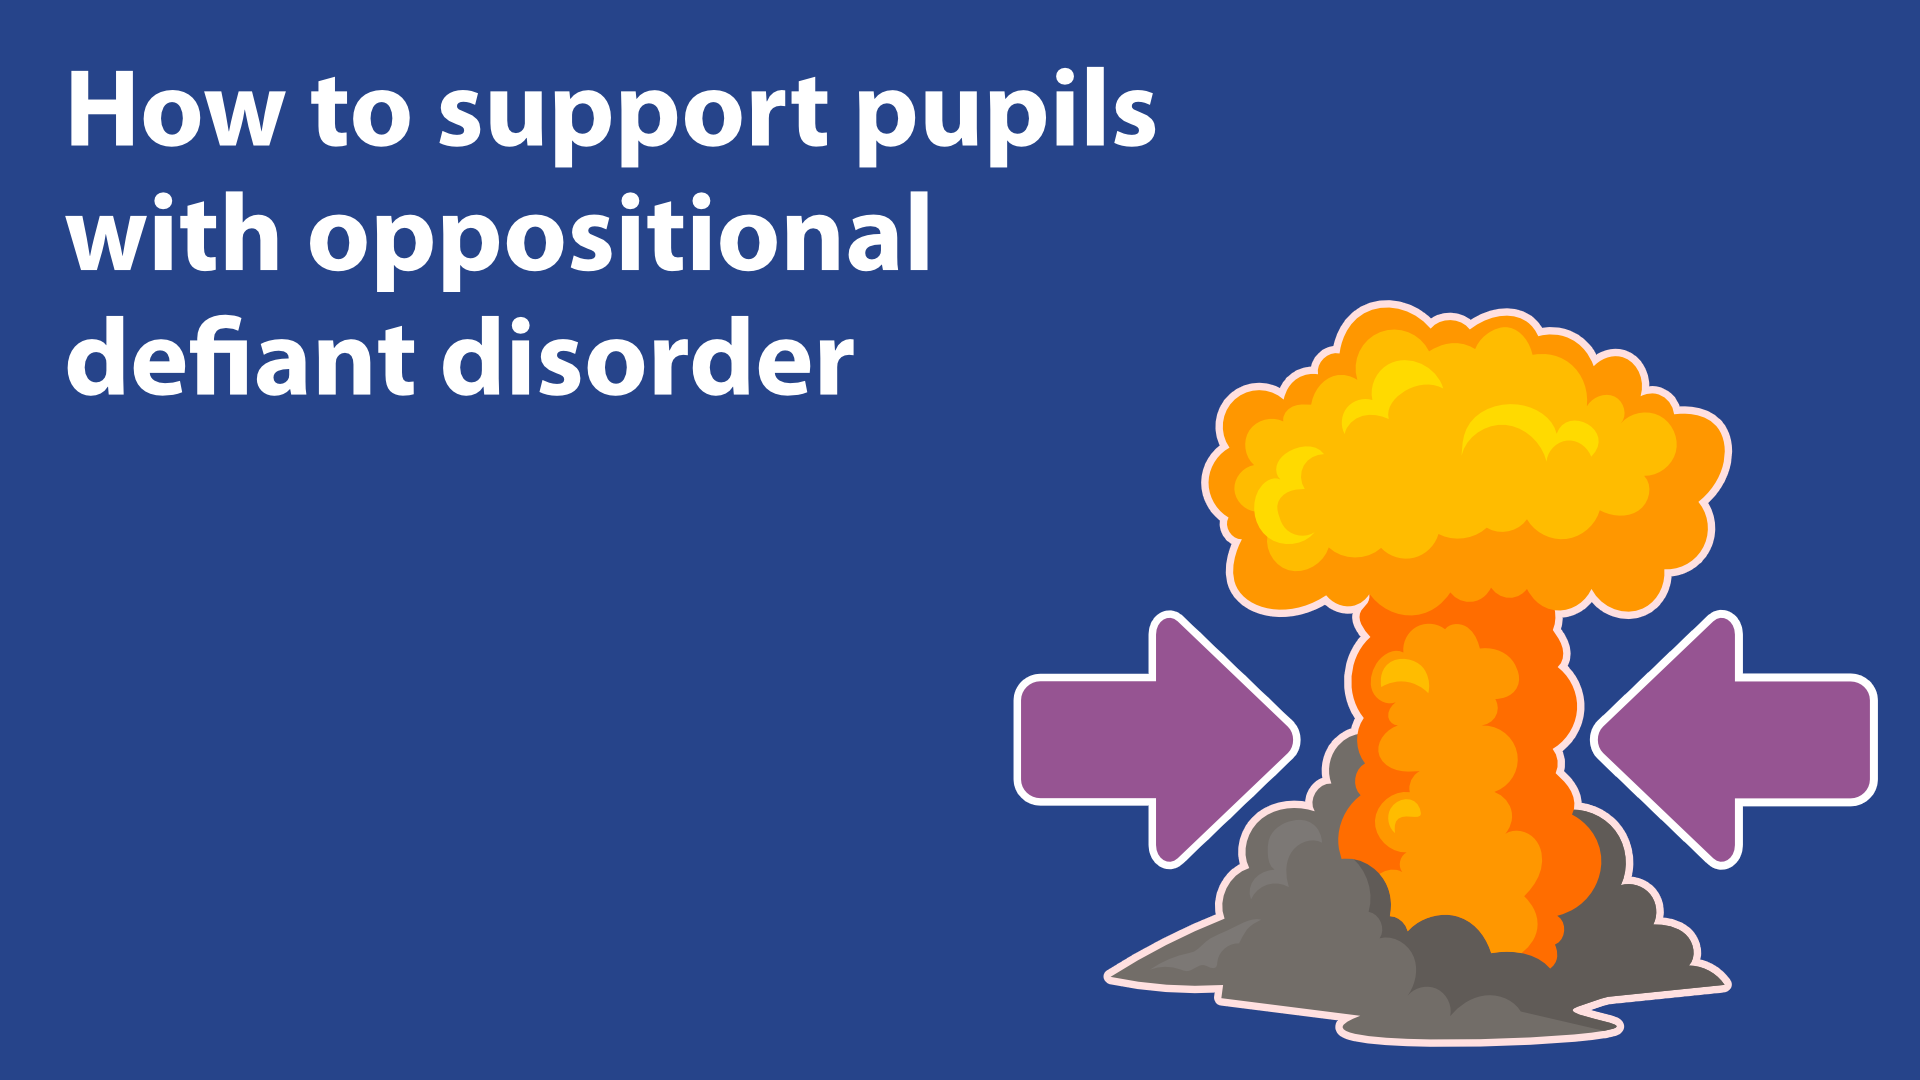 How To Support Pupils With Oppositional Defiant Disorder image